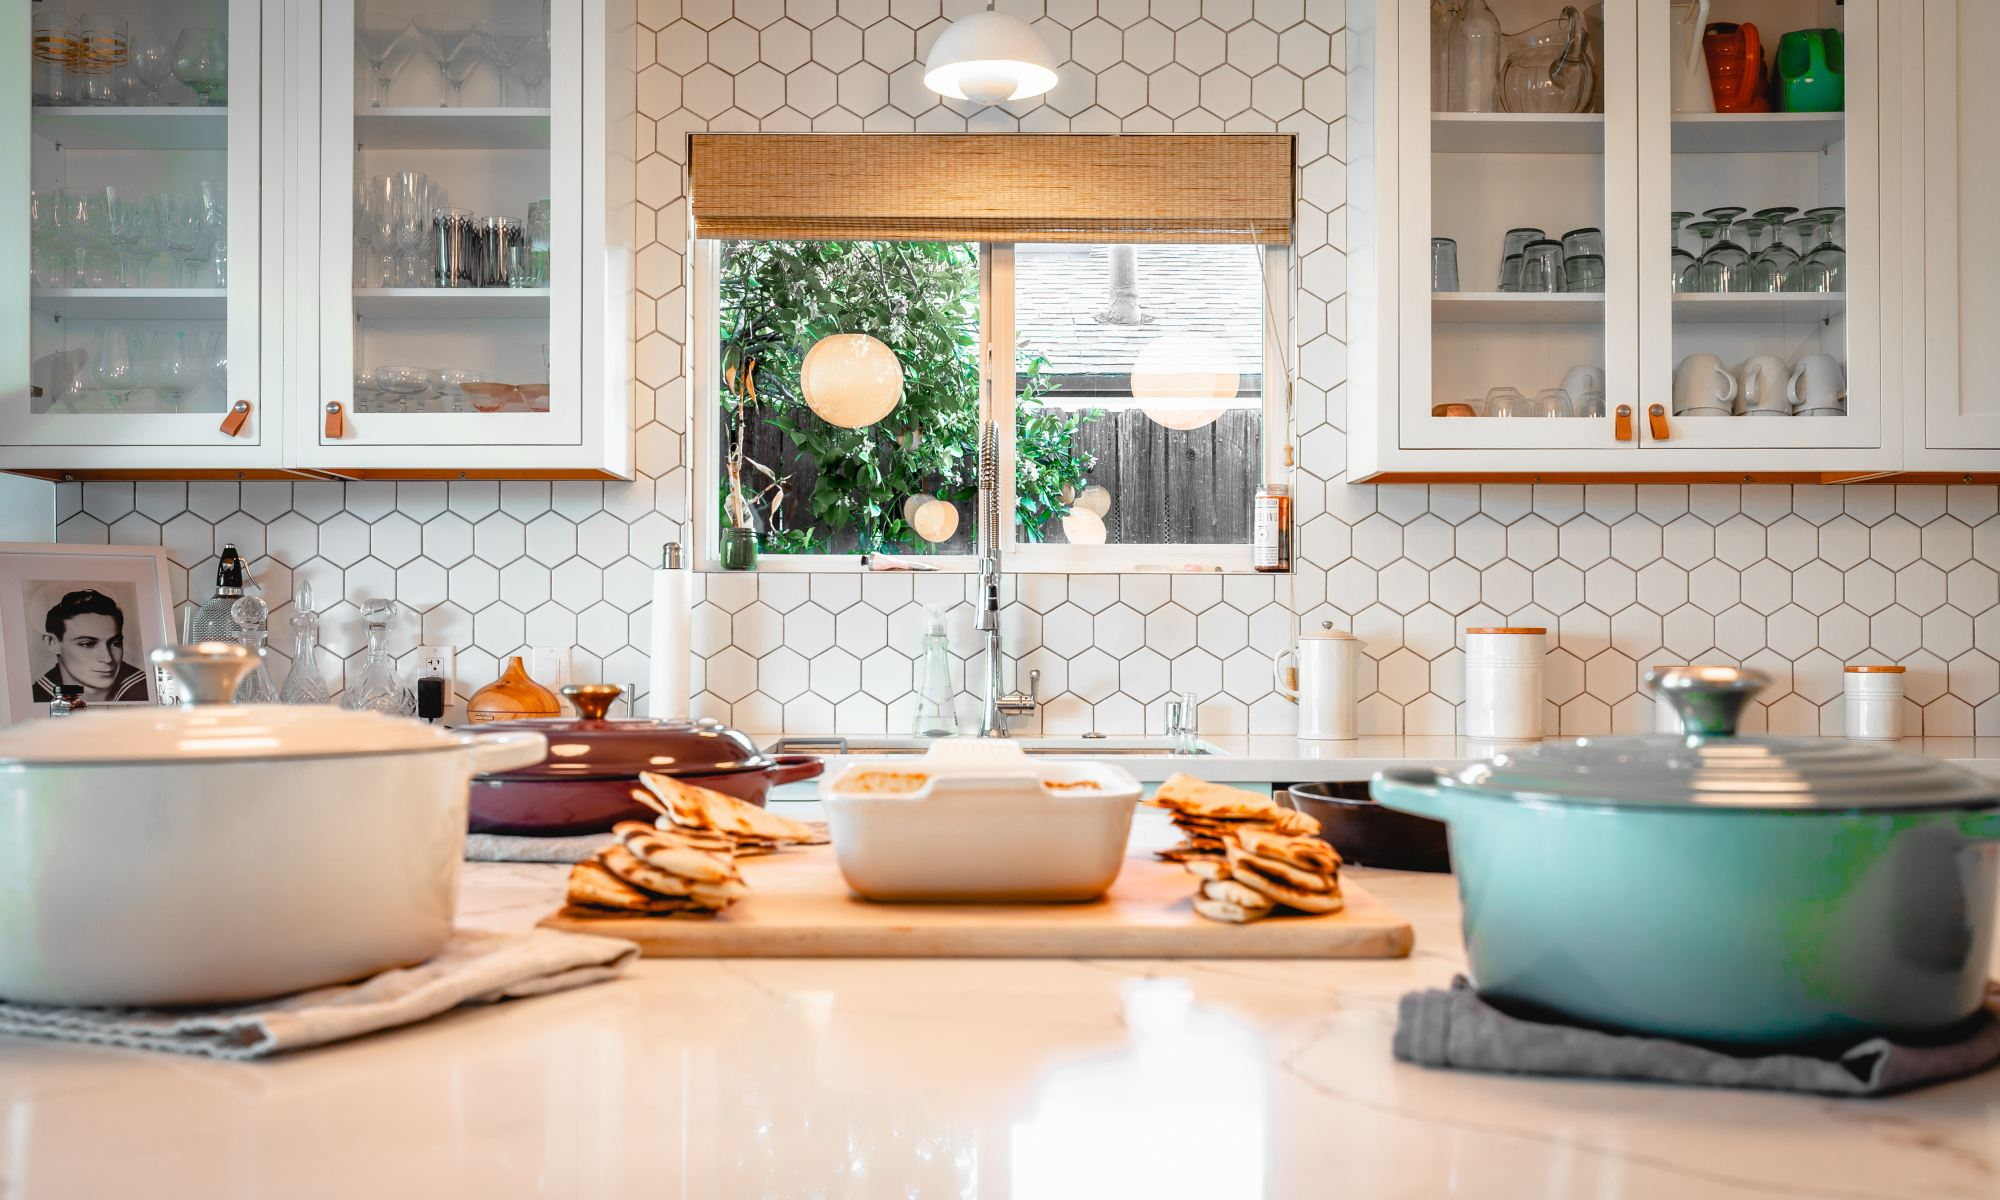 Pleasant eating environment in a white kitchen